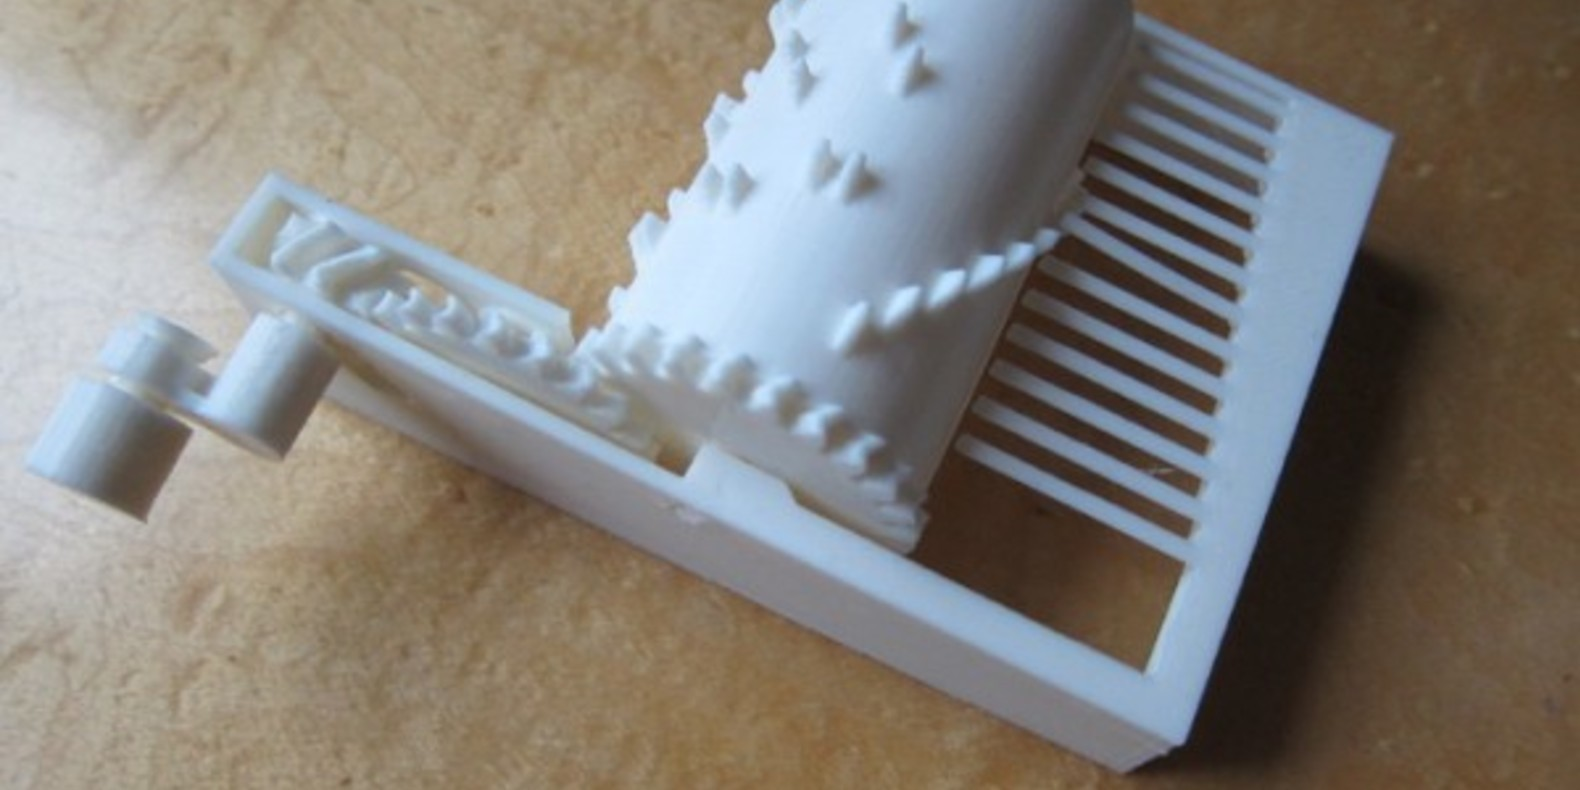 A music box to print in 3D